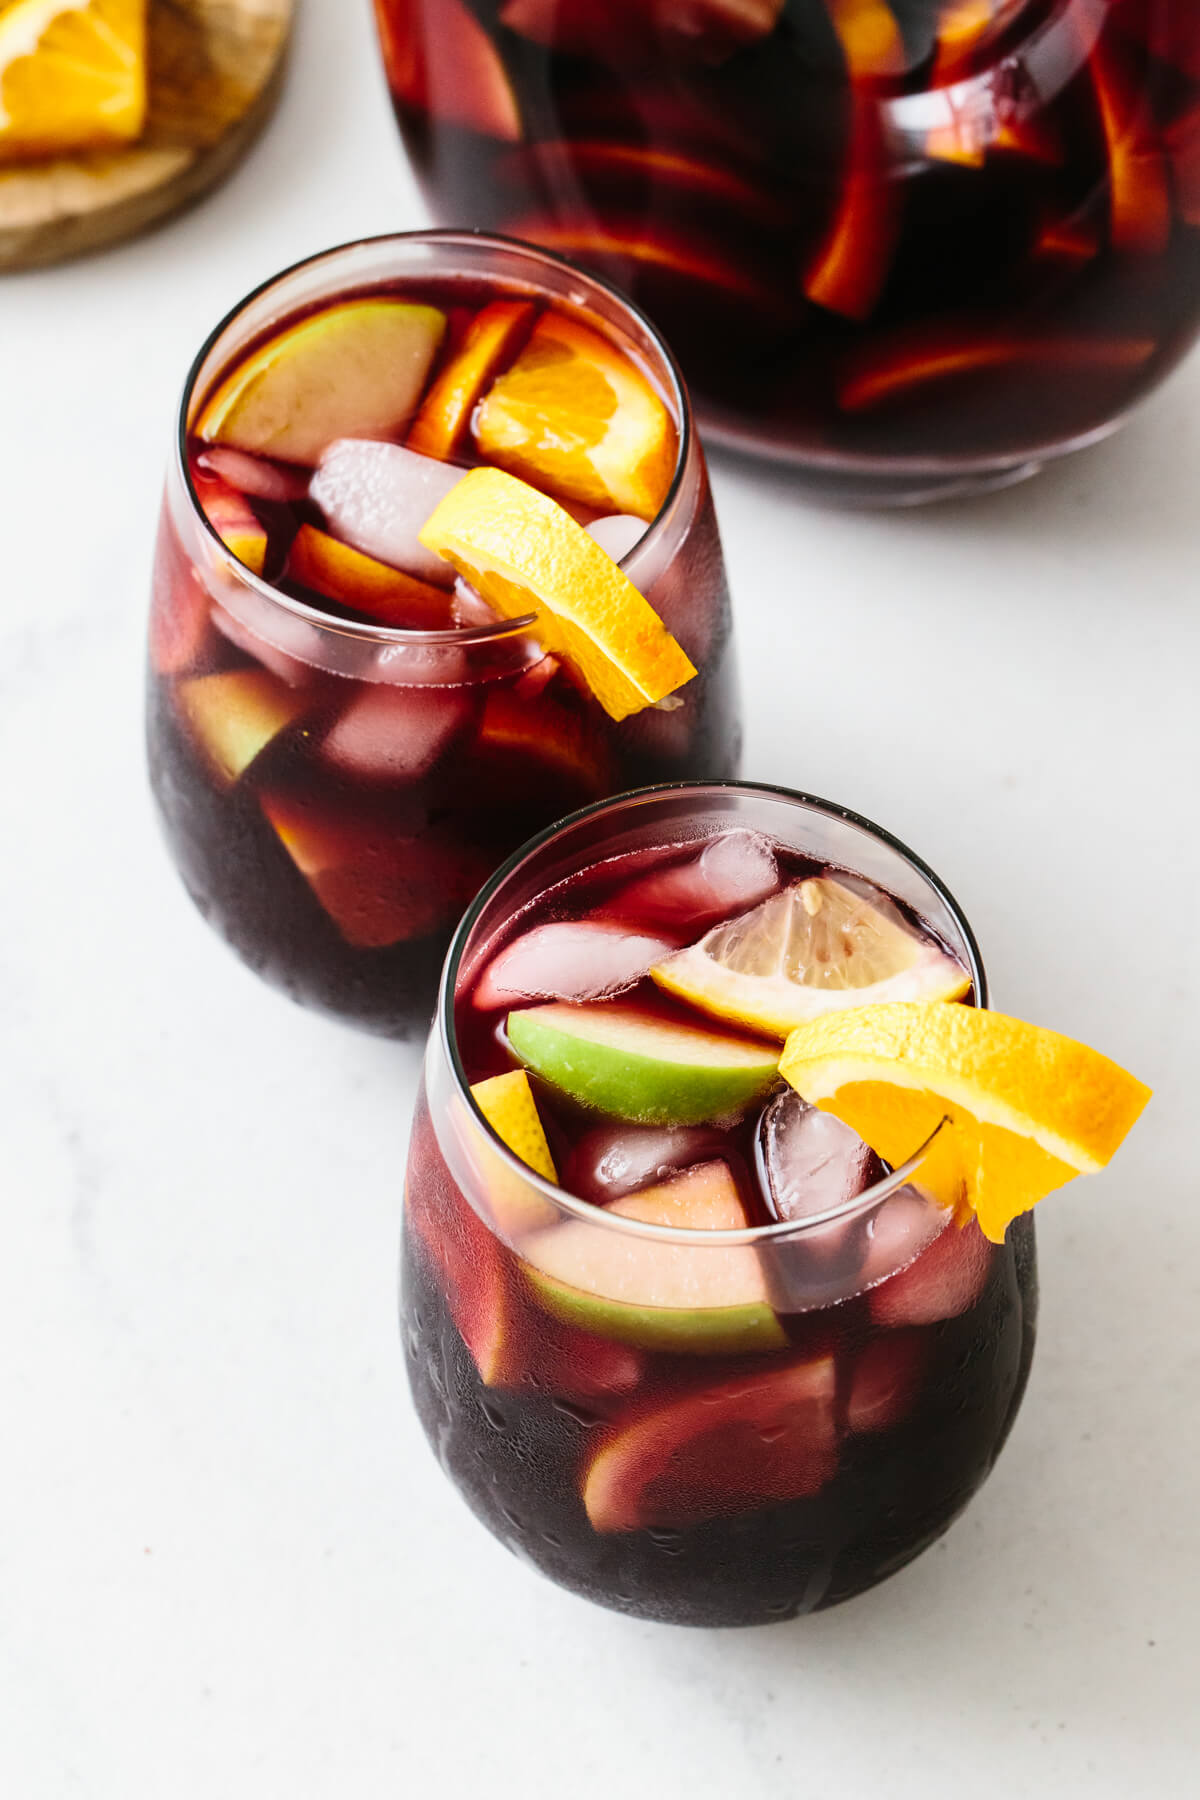 Two glasses of red sangria with orange garnishes.